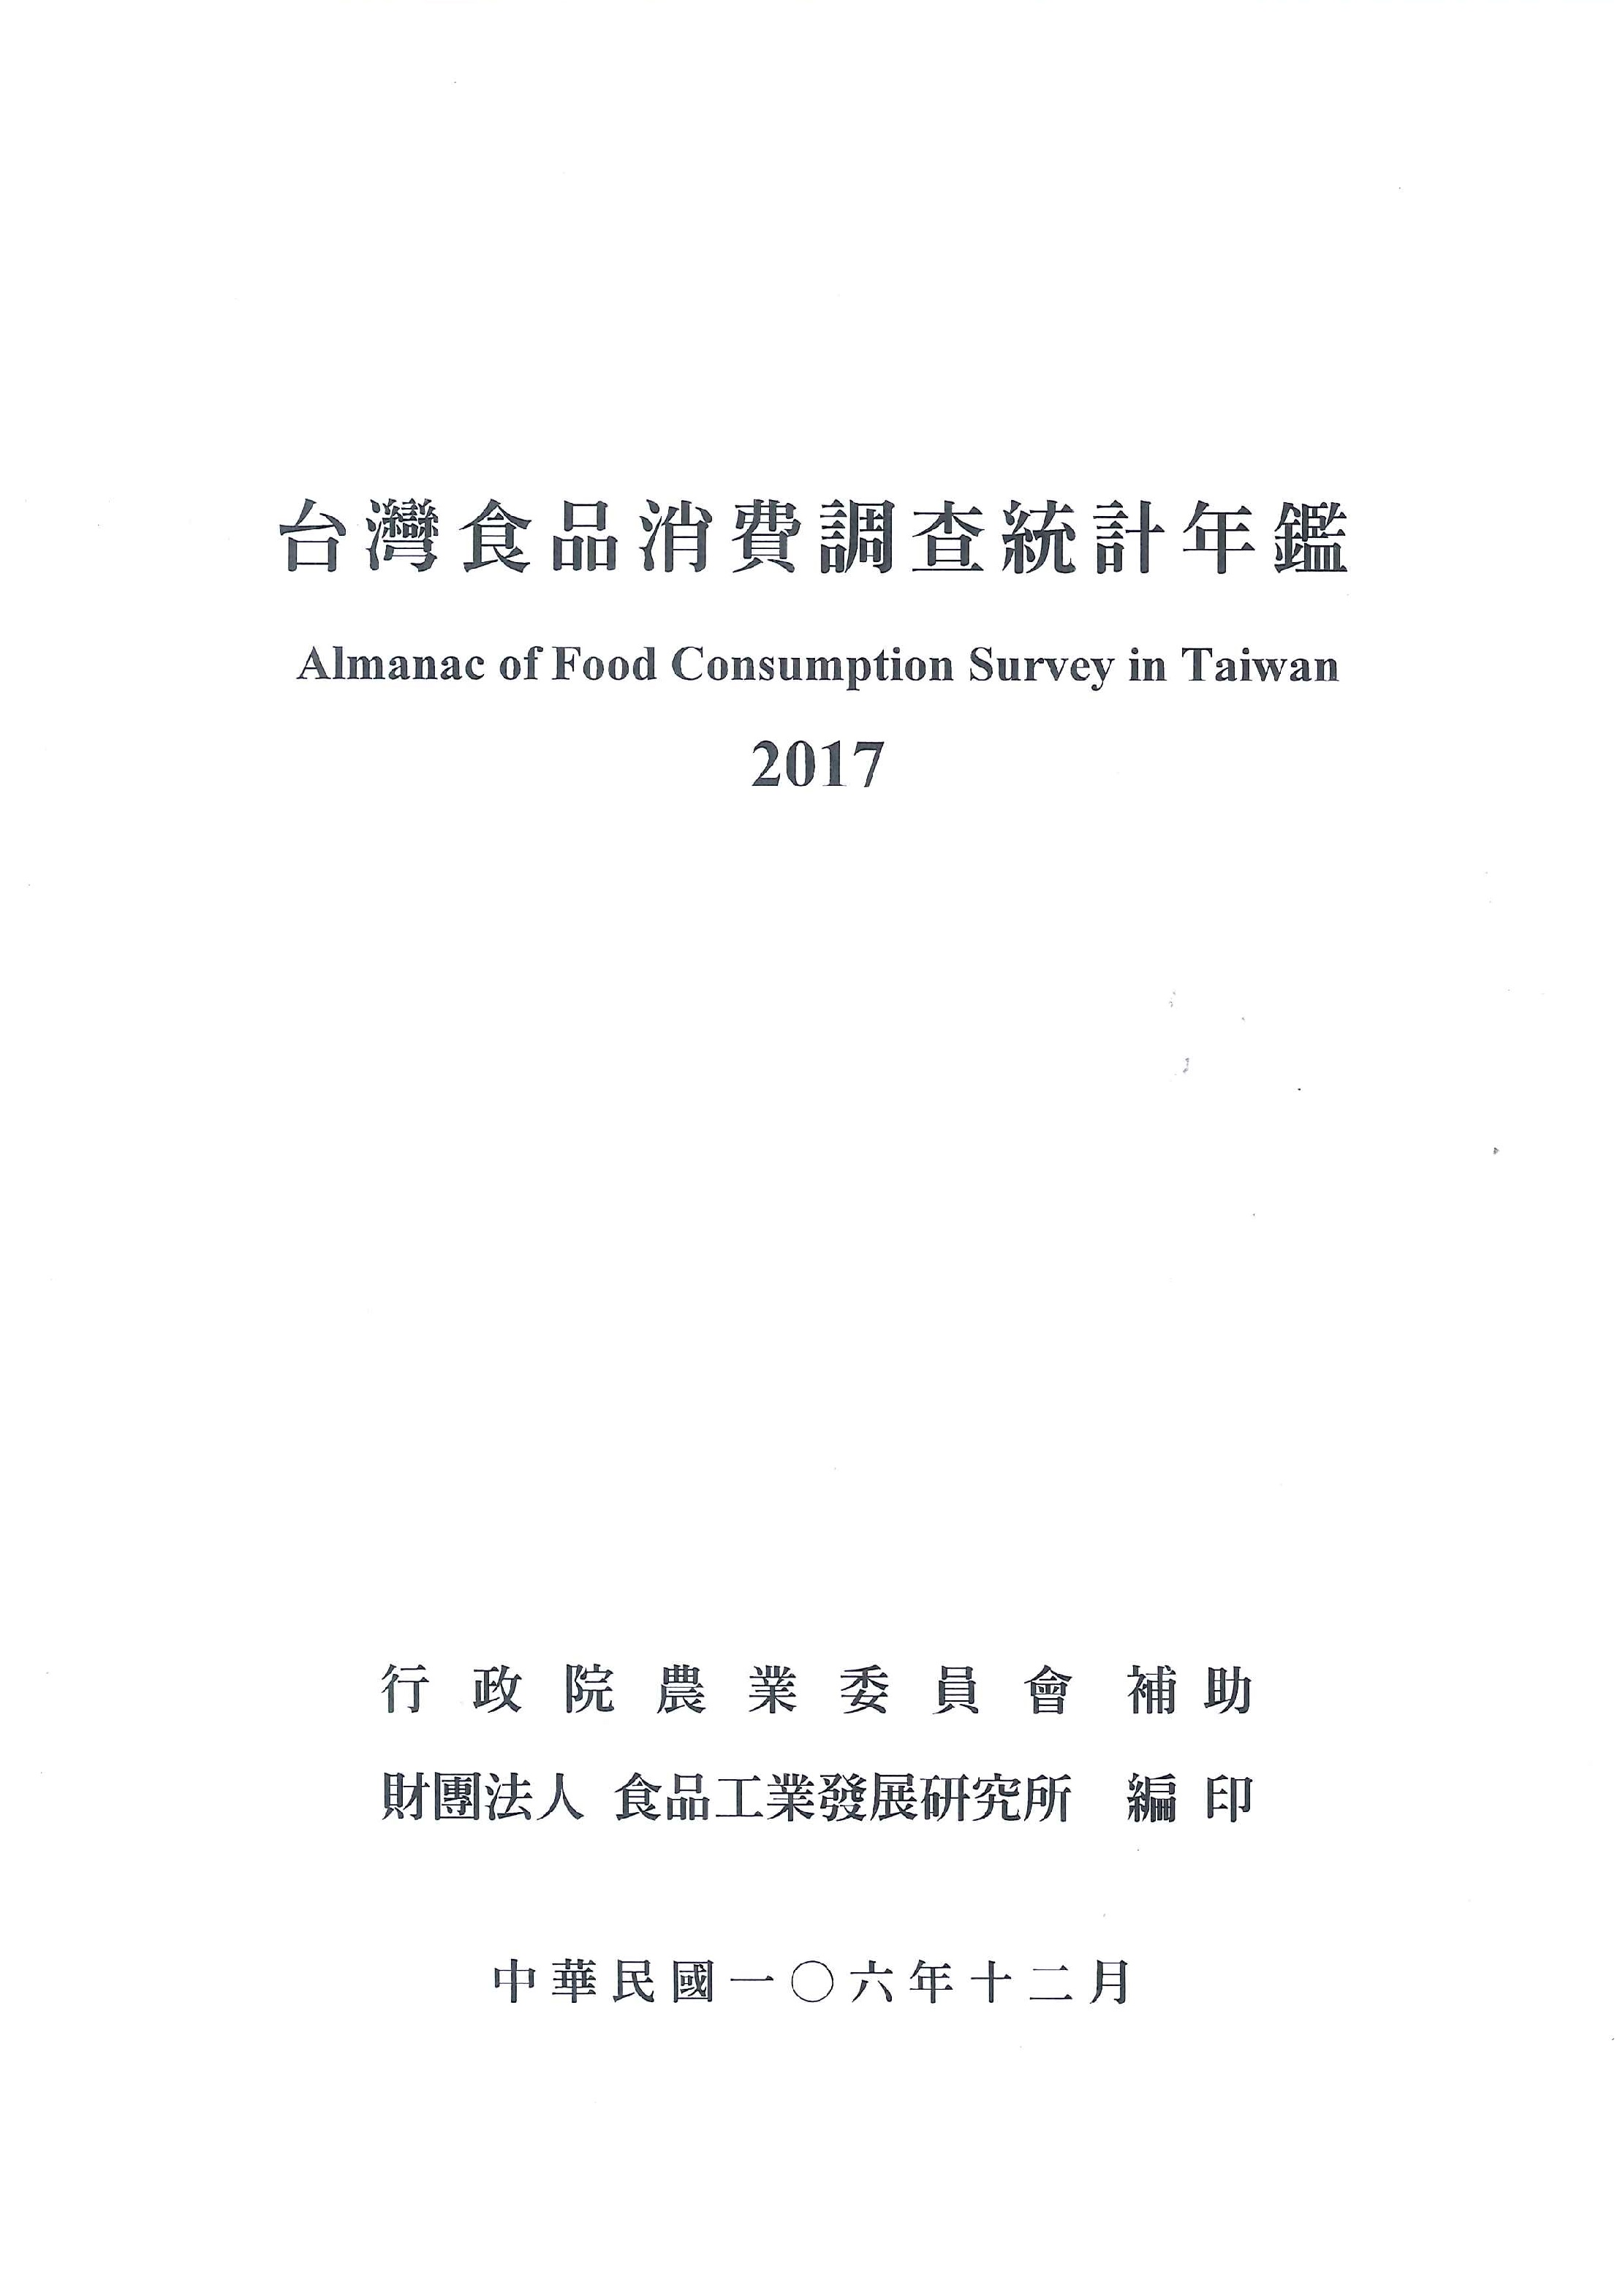 台灣食品消費調查統計年鑑=Almanac of food consumption survey in Taiwan